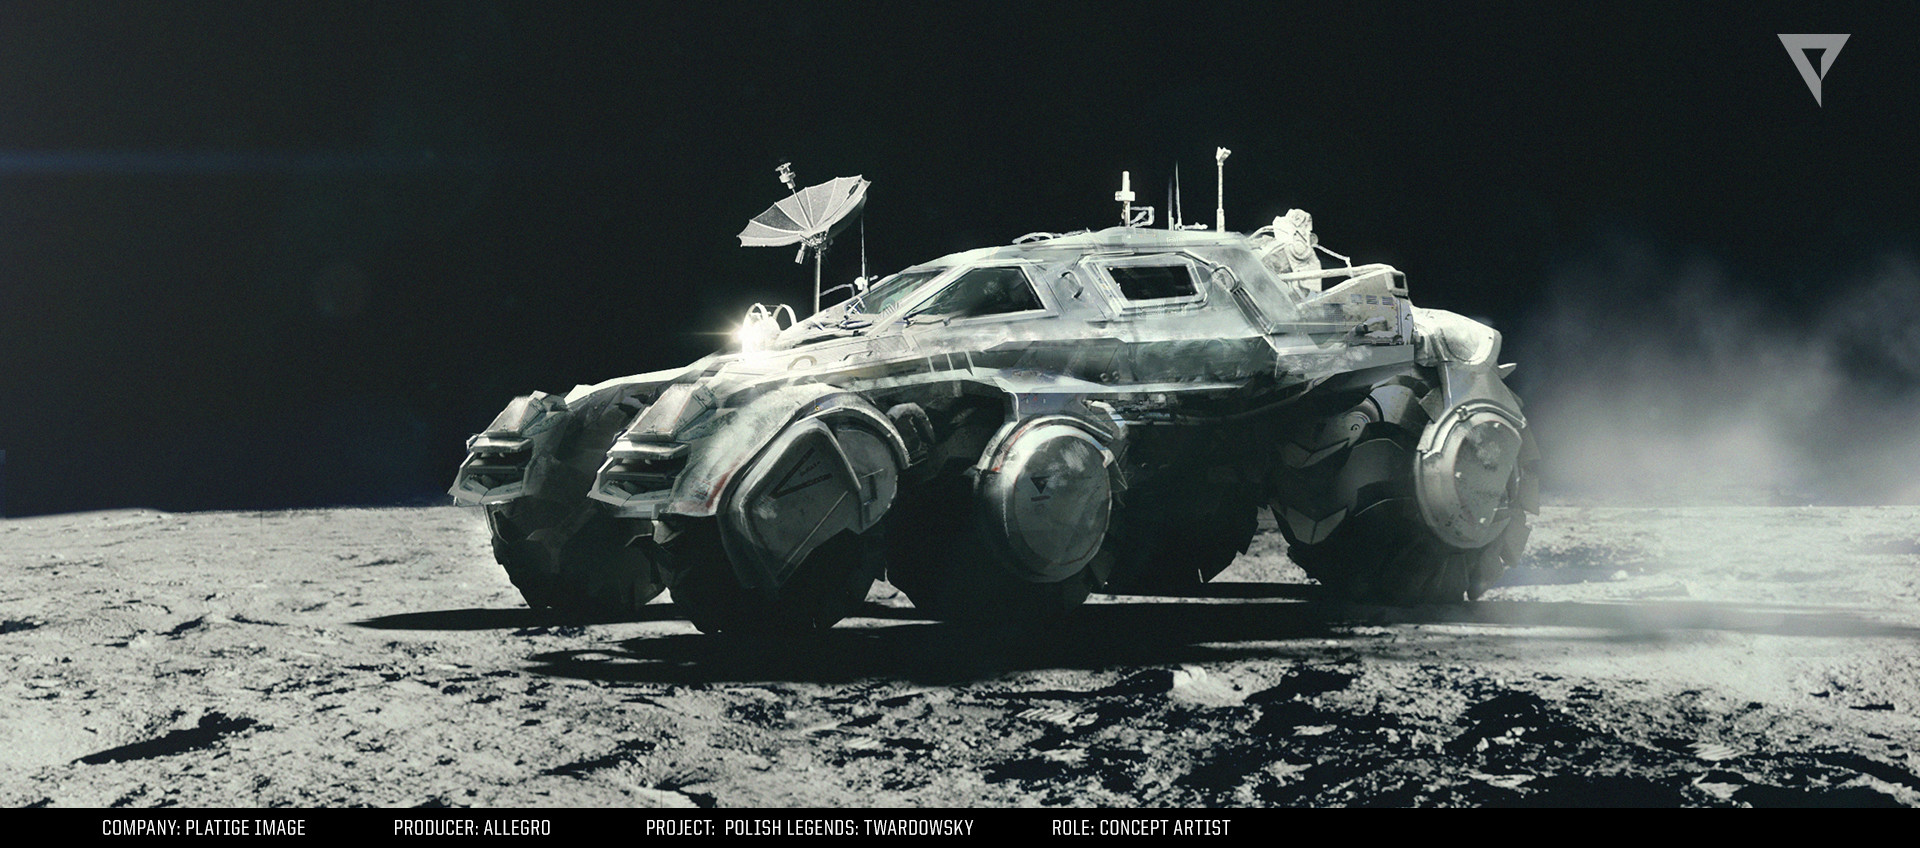 moon rover images - photo #33